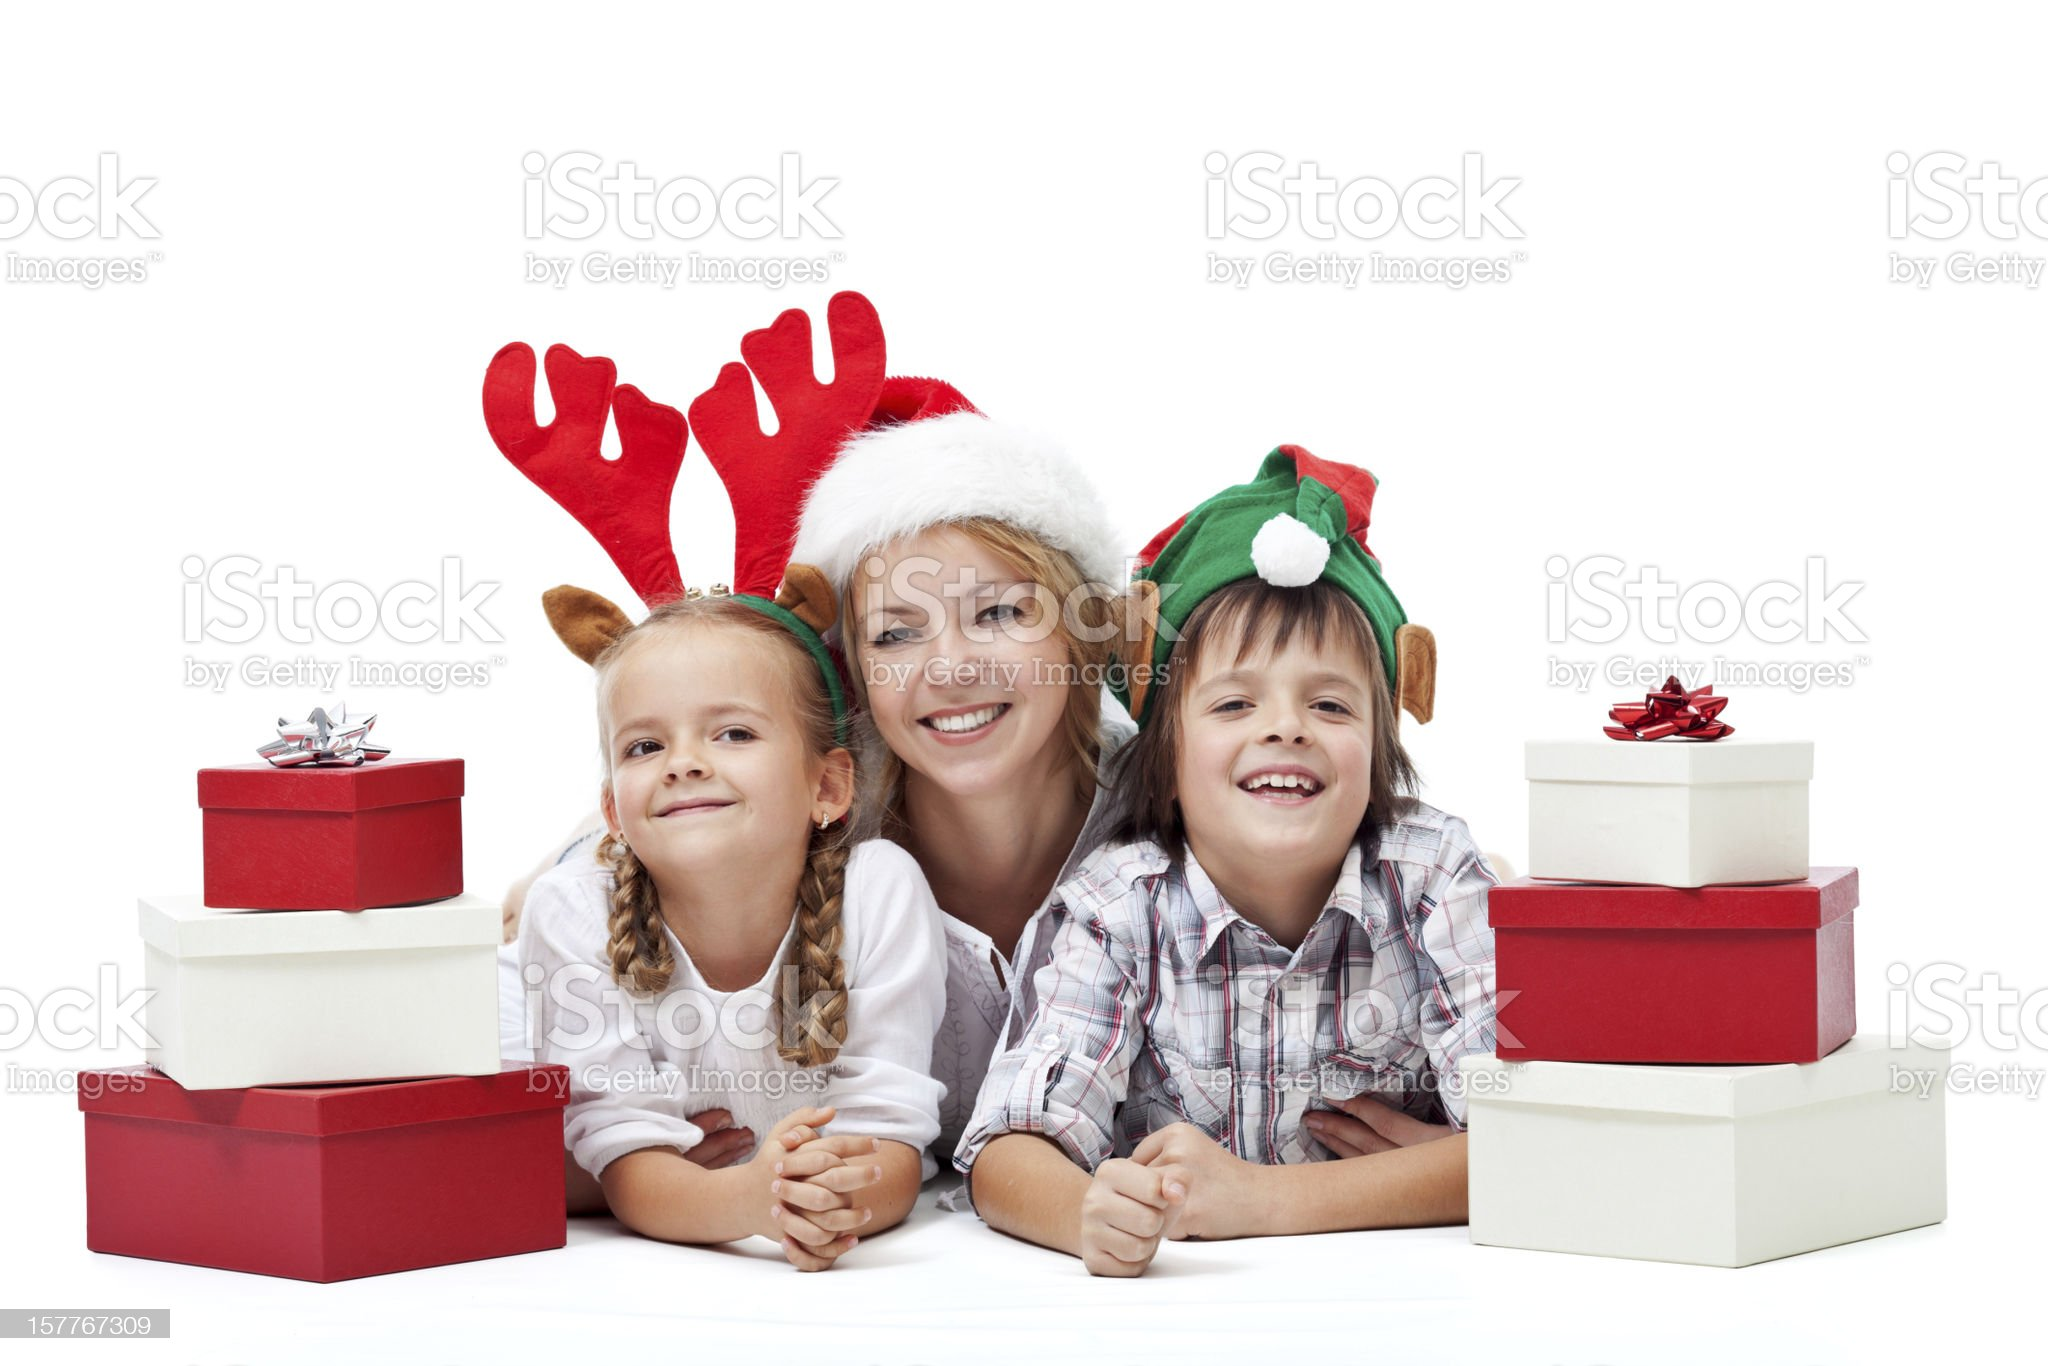 Happy christmas people with presents royalty-free stock photo